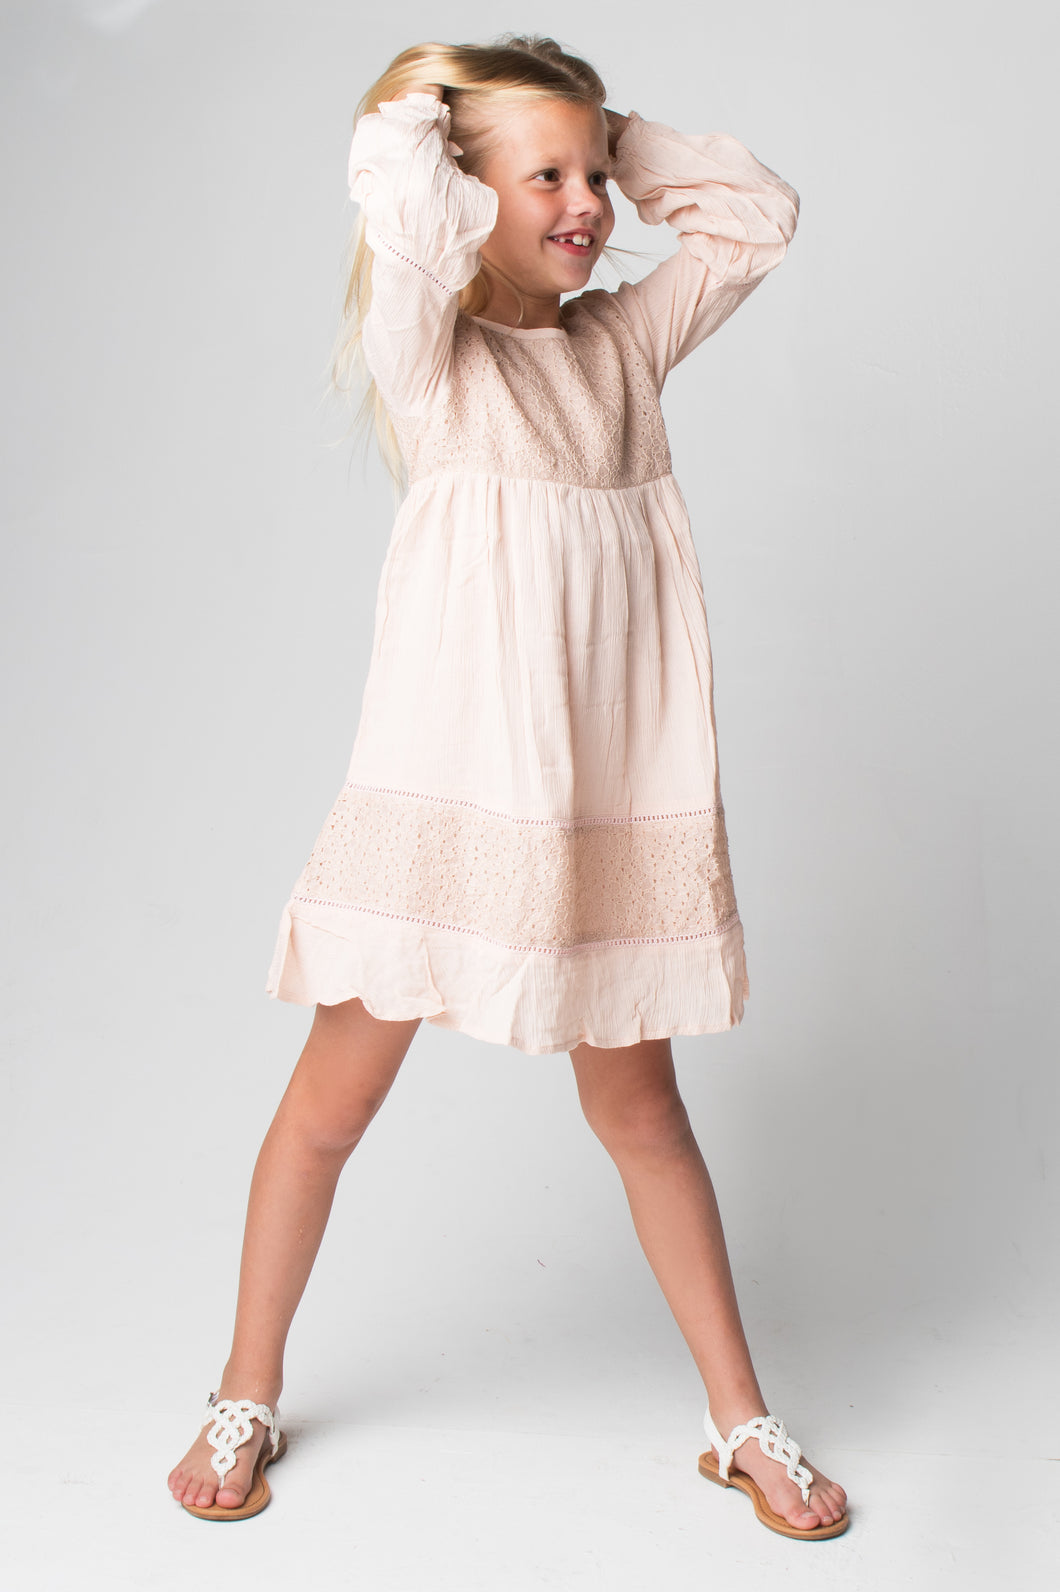 Blush Lace Detail Dress - Kids Wholesale Boutique Clothing, Dress - Girls Dresses, Yo Baby Wholesale - Yo Baby